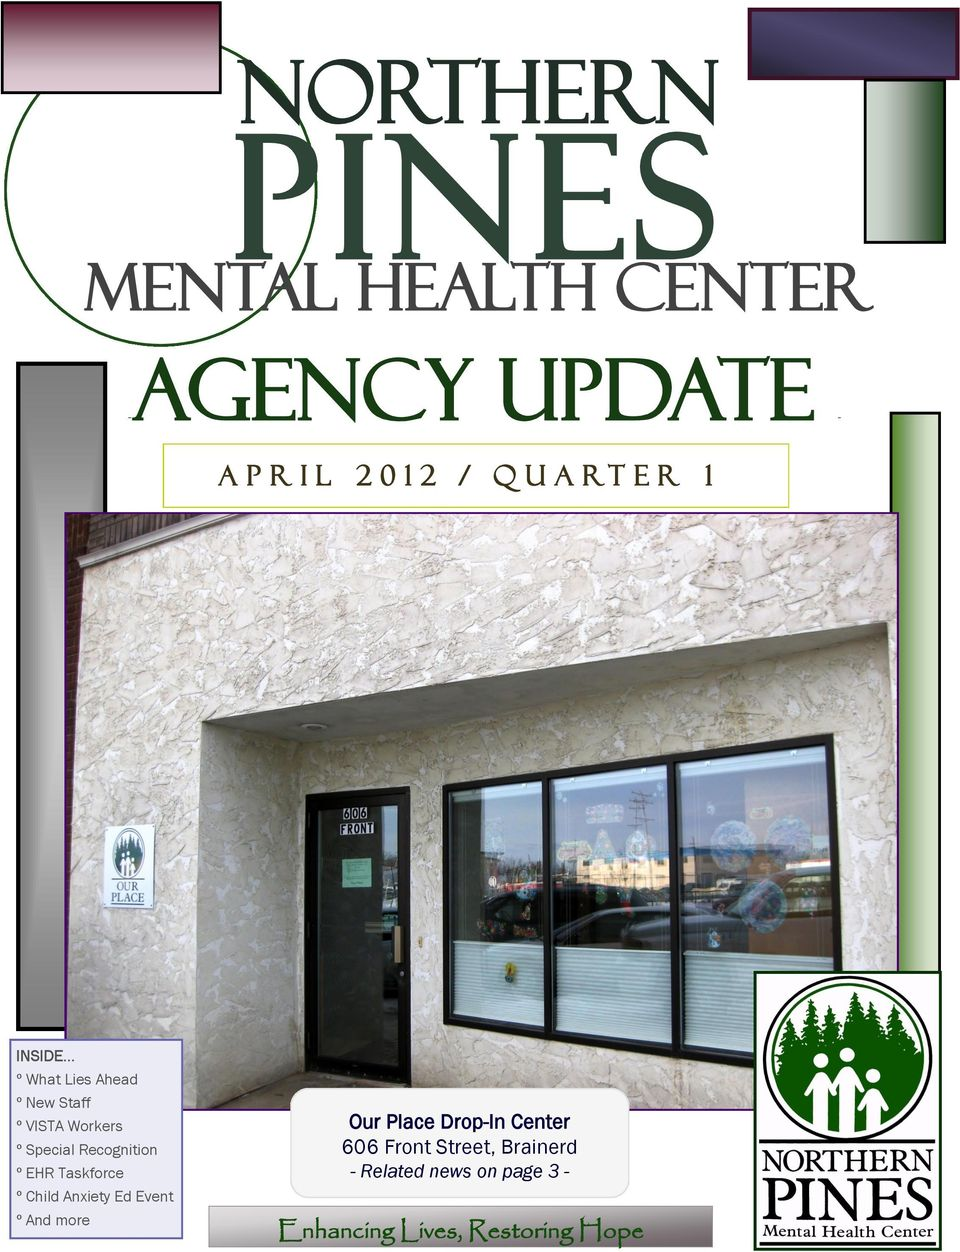 Northern Pines Mental Health Center Agency Update A P R I L